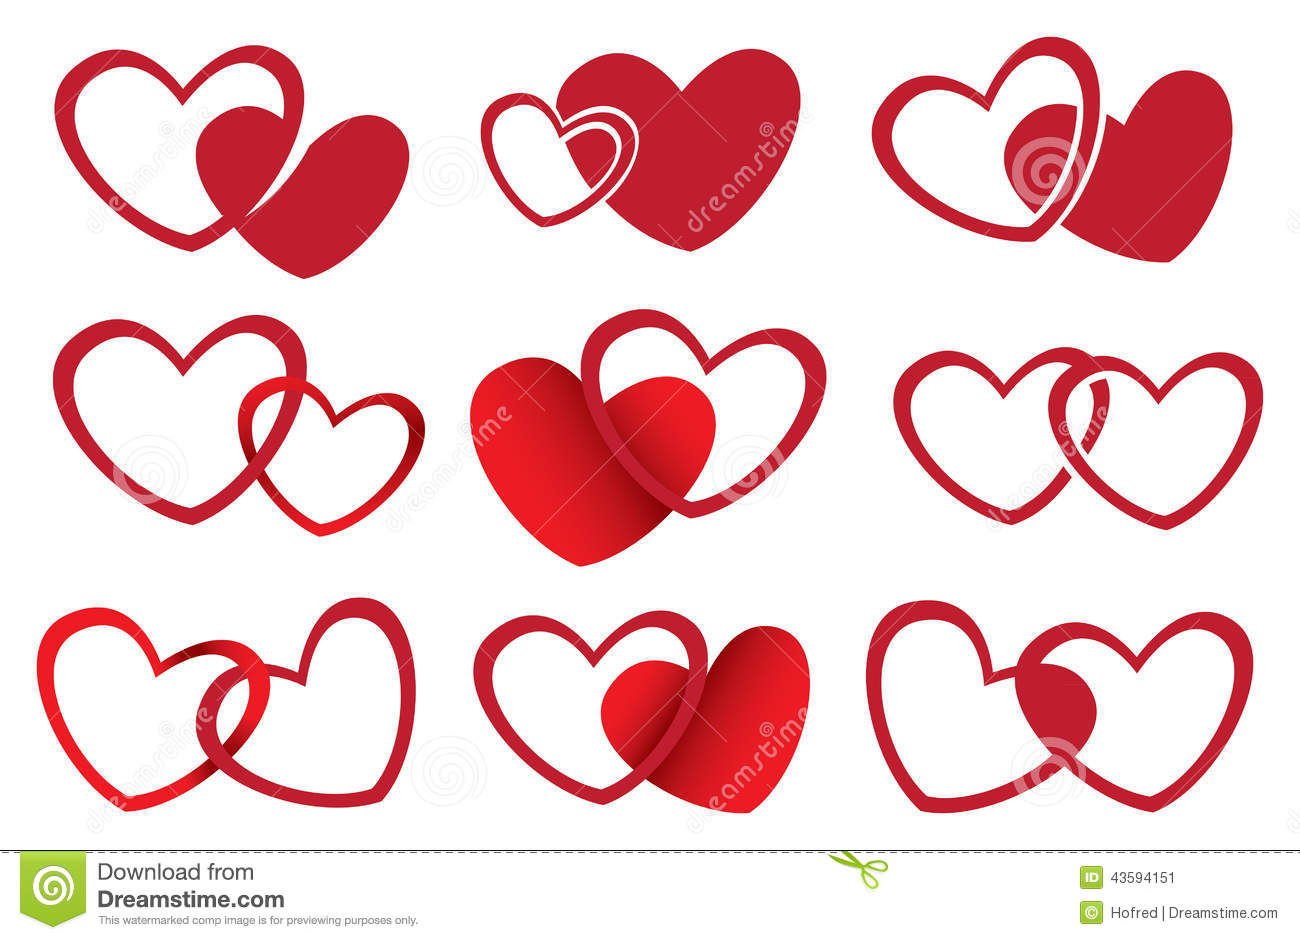 Red Hearts Vector Design For Love Theme Stock Vector - Image: 43594151